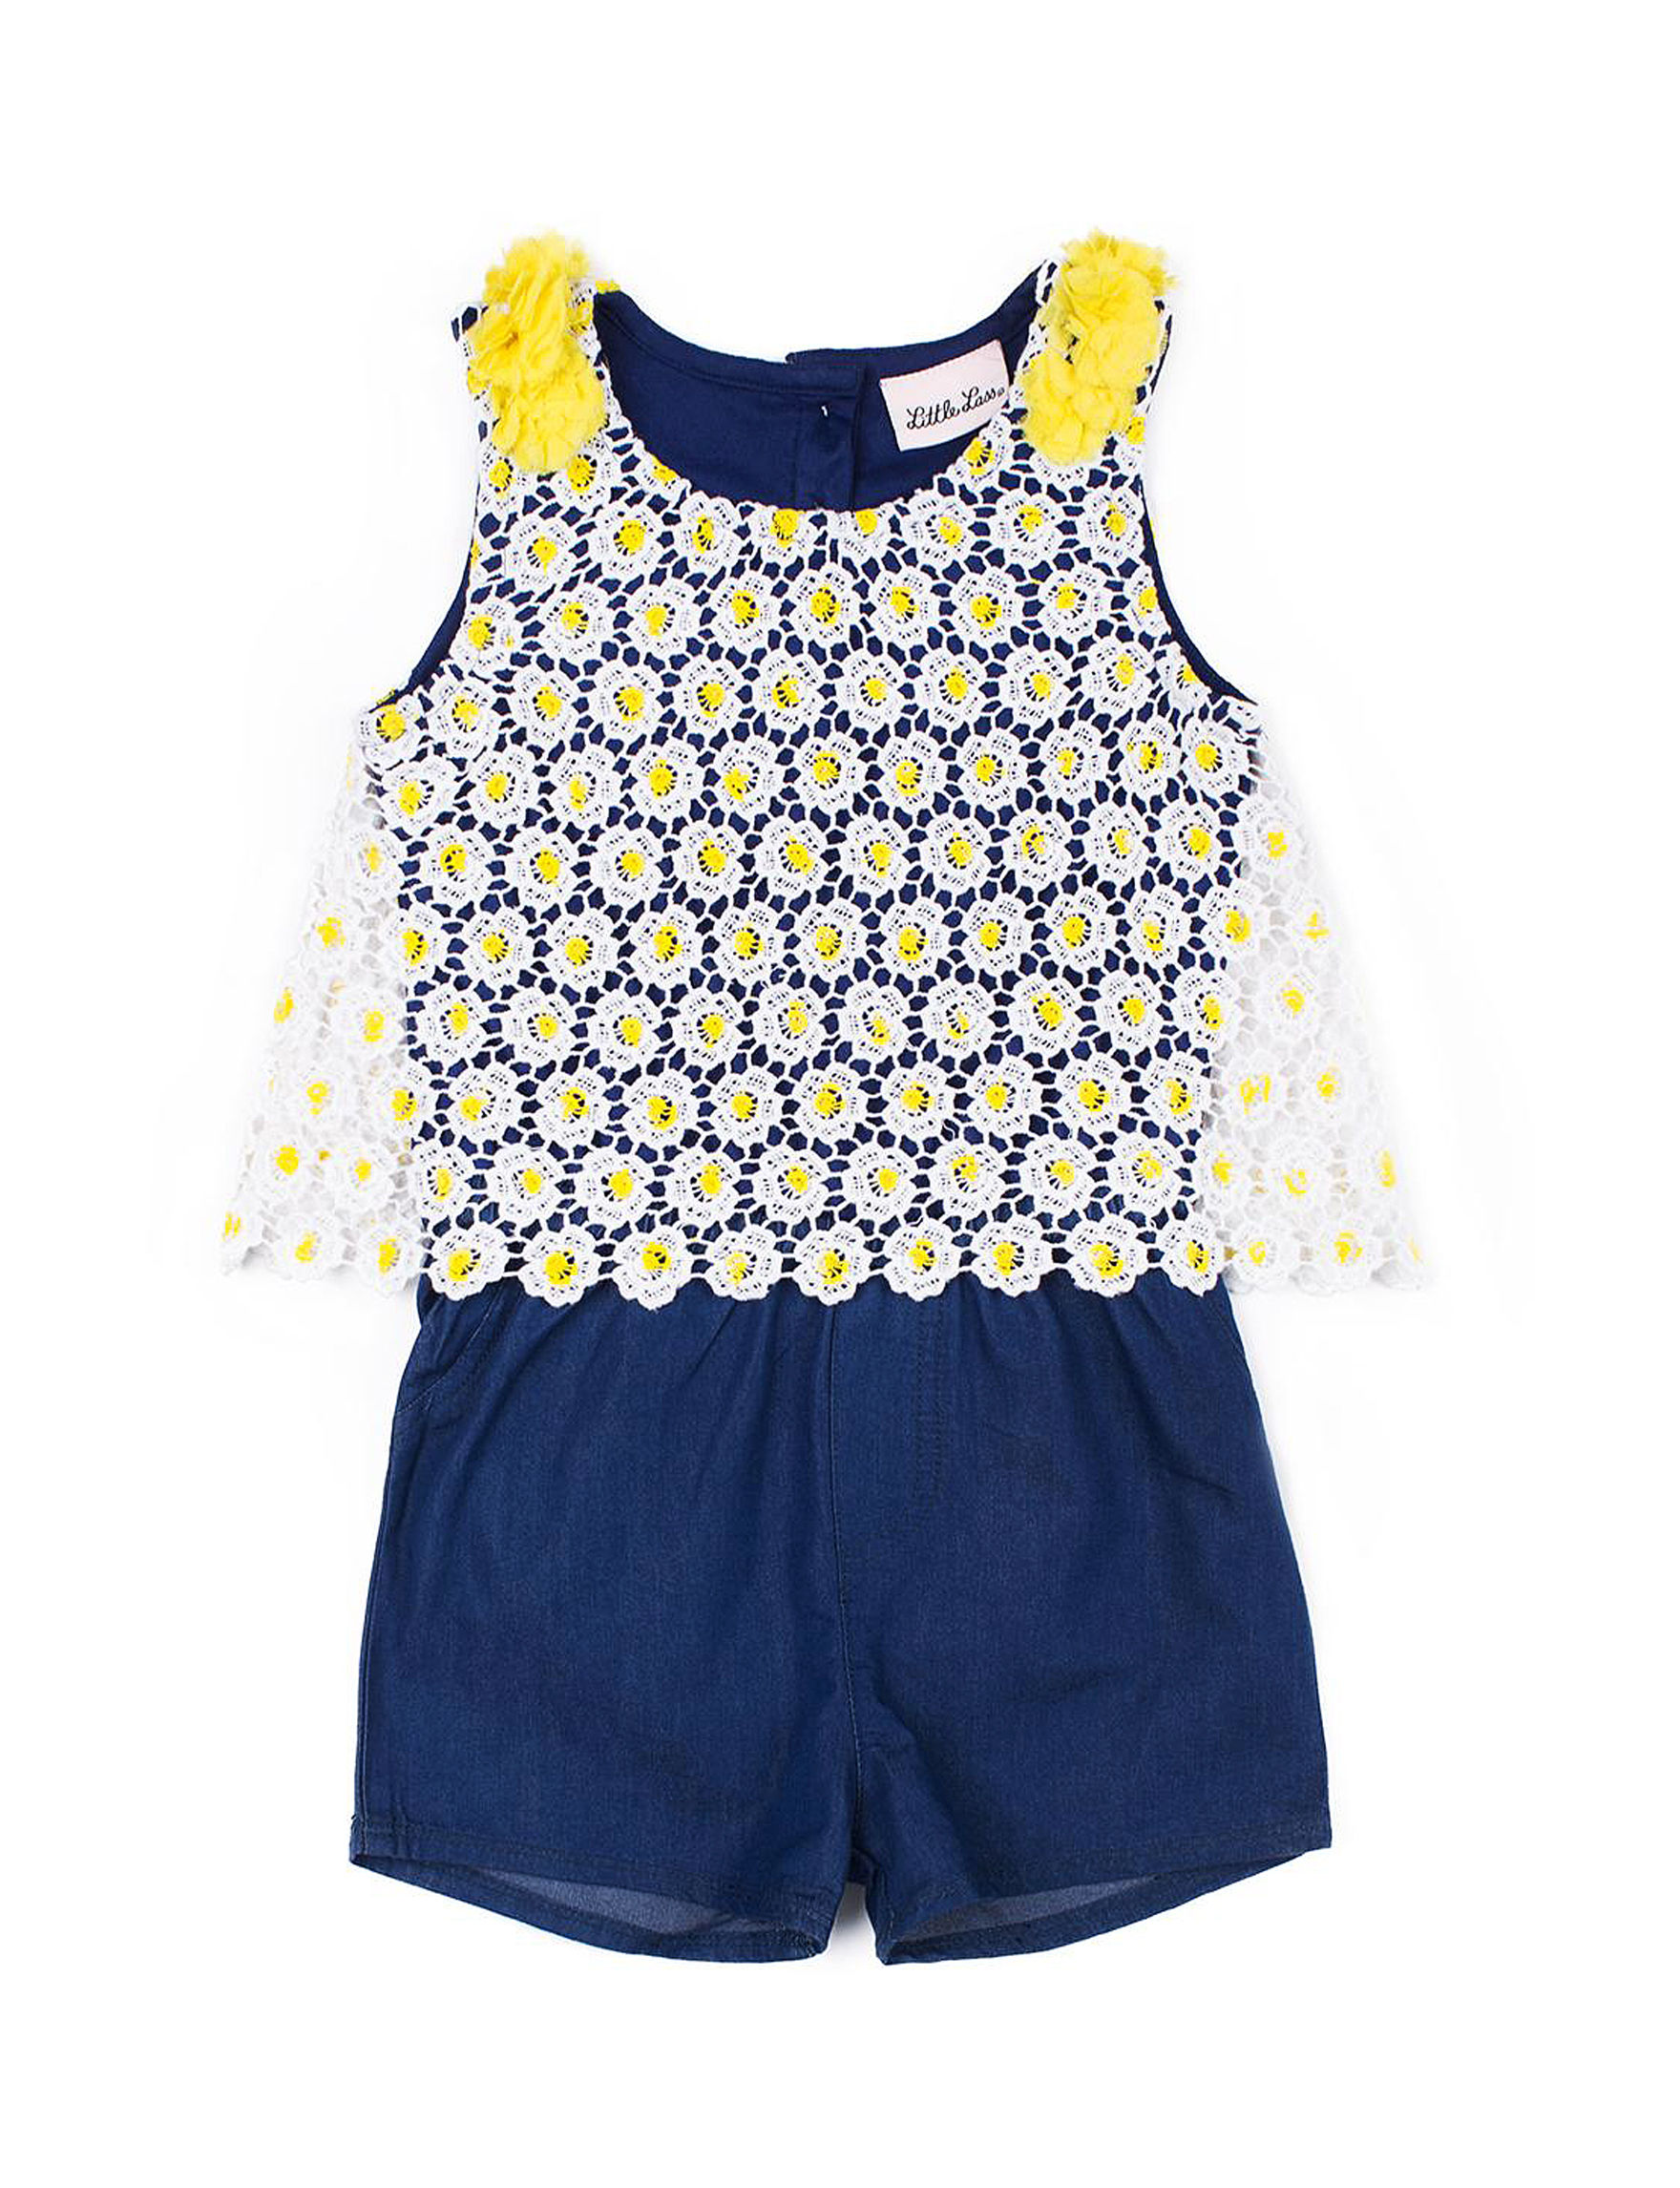 Little Lass Navy / Yellow